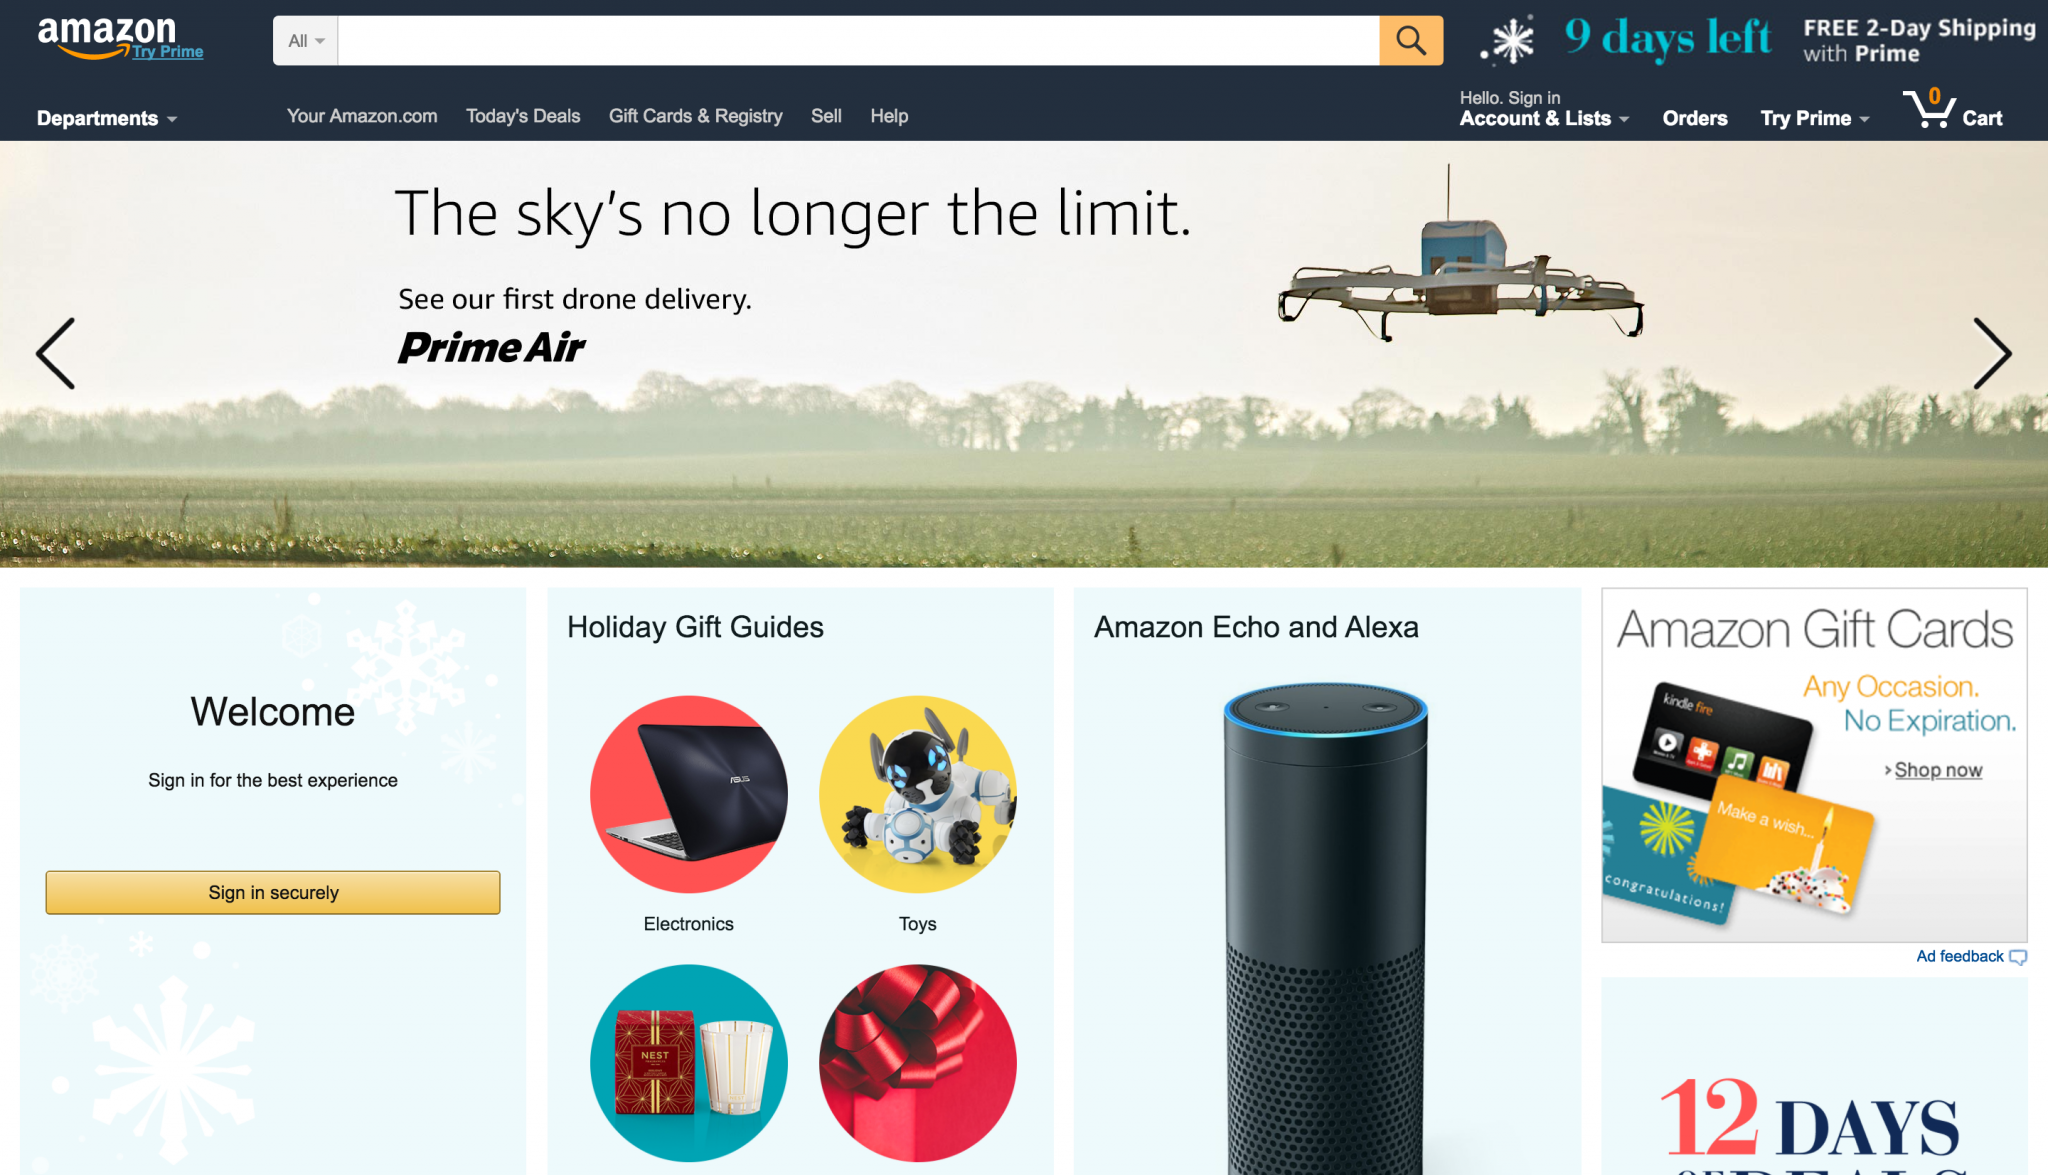 Amazon Brand Loyalty Lessons